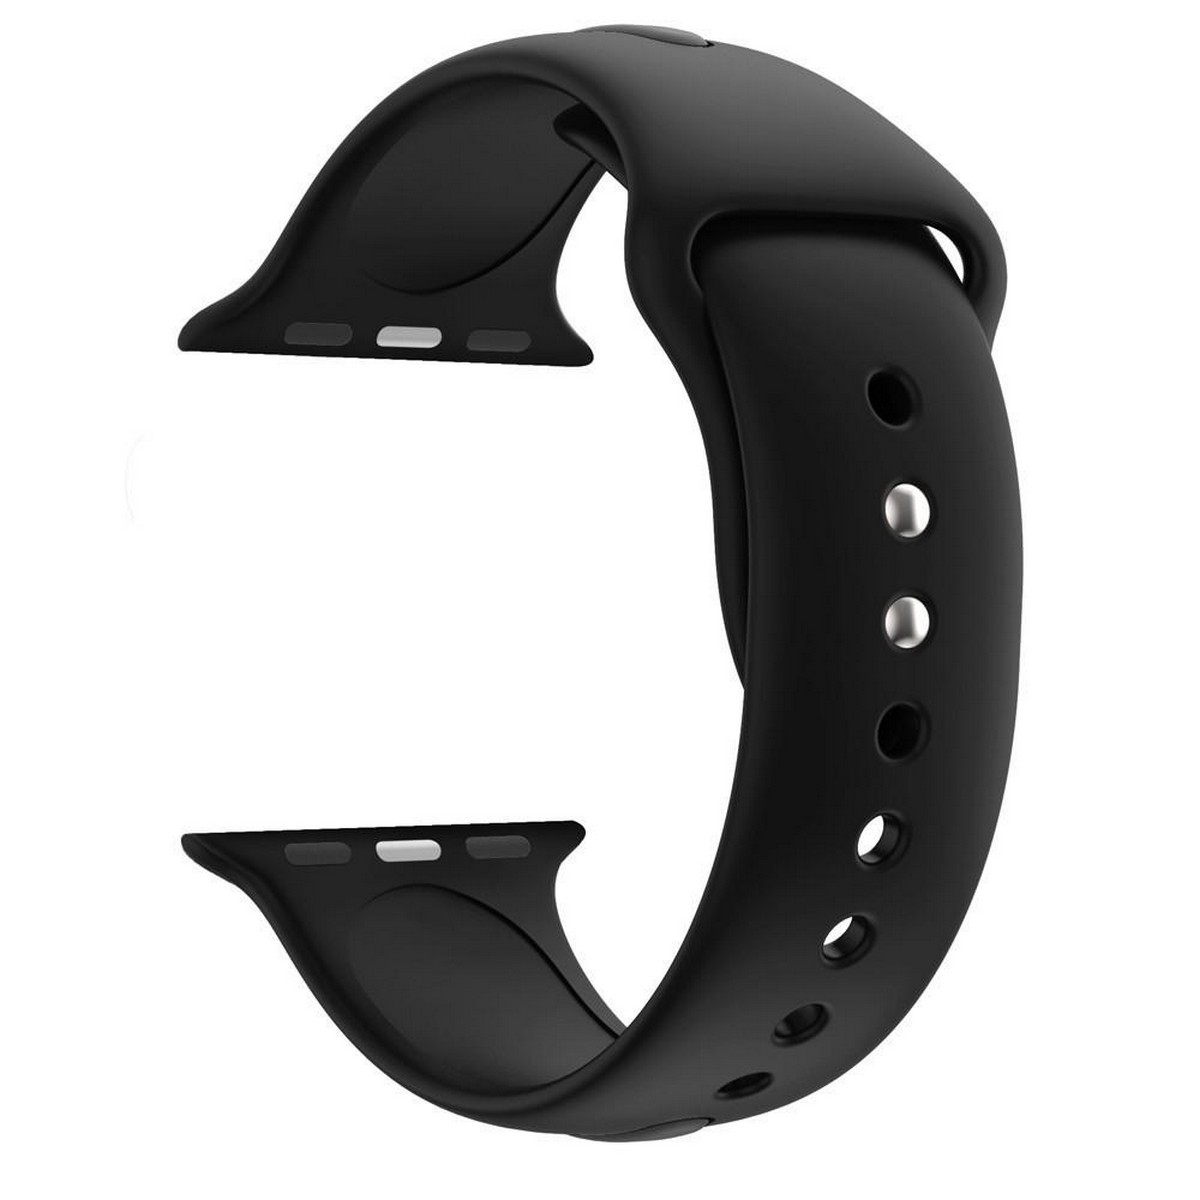 New High Quality Soft Silicone Band Watch Strap for 44mm 42mm Replacement Wrist Sport Bands Wrist Straps for 42 / 44mm Apple Watch IWatch Series 6/5/4/3/2/1 T500, T500 Pro Watches Wristband Rubber Bracelet Smartwatches Straps - Multicolor Options